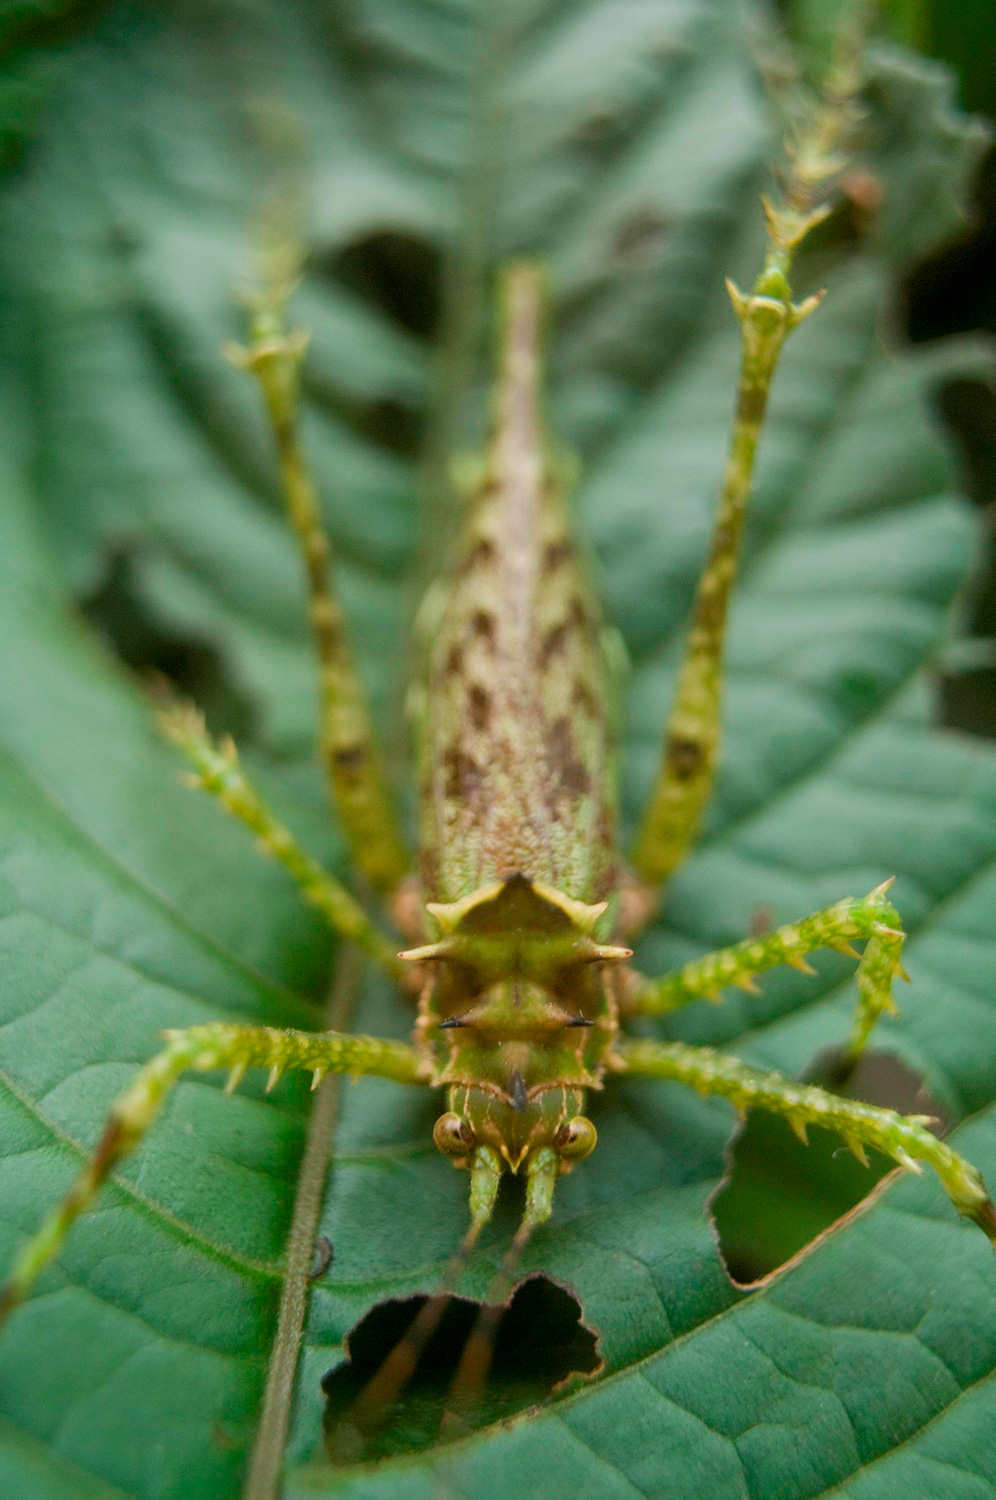 A large spiny insect with many legs